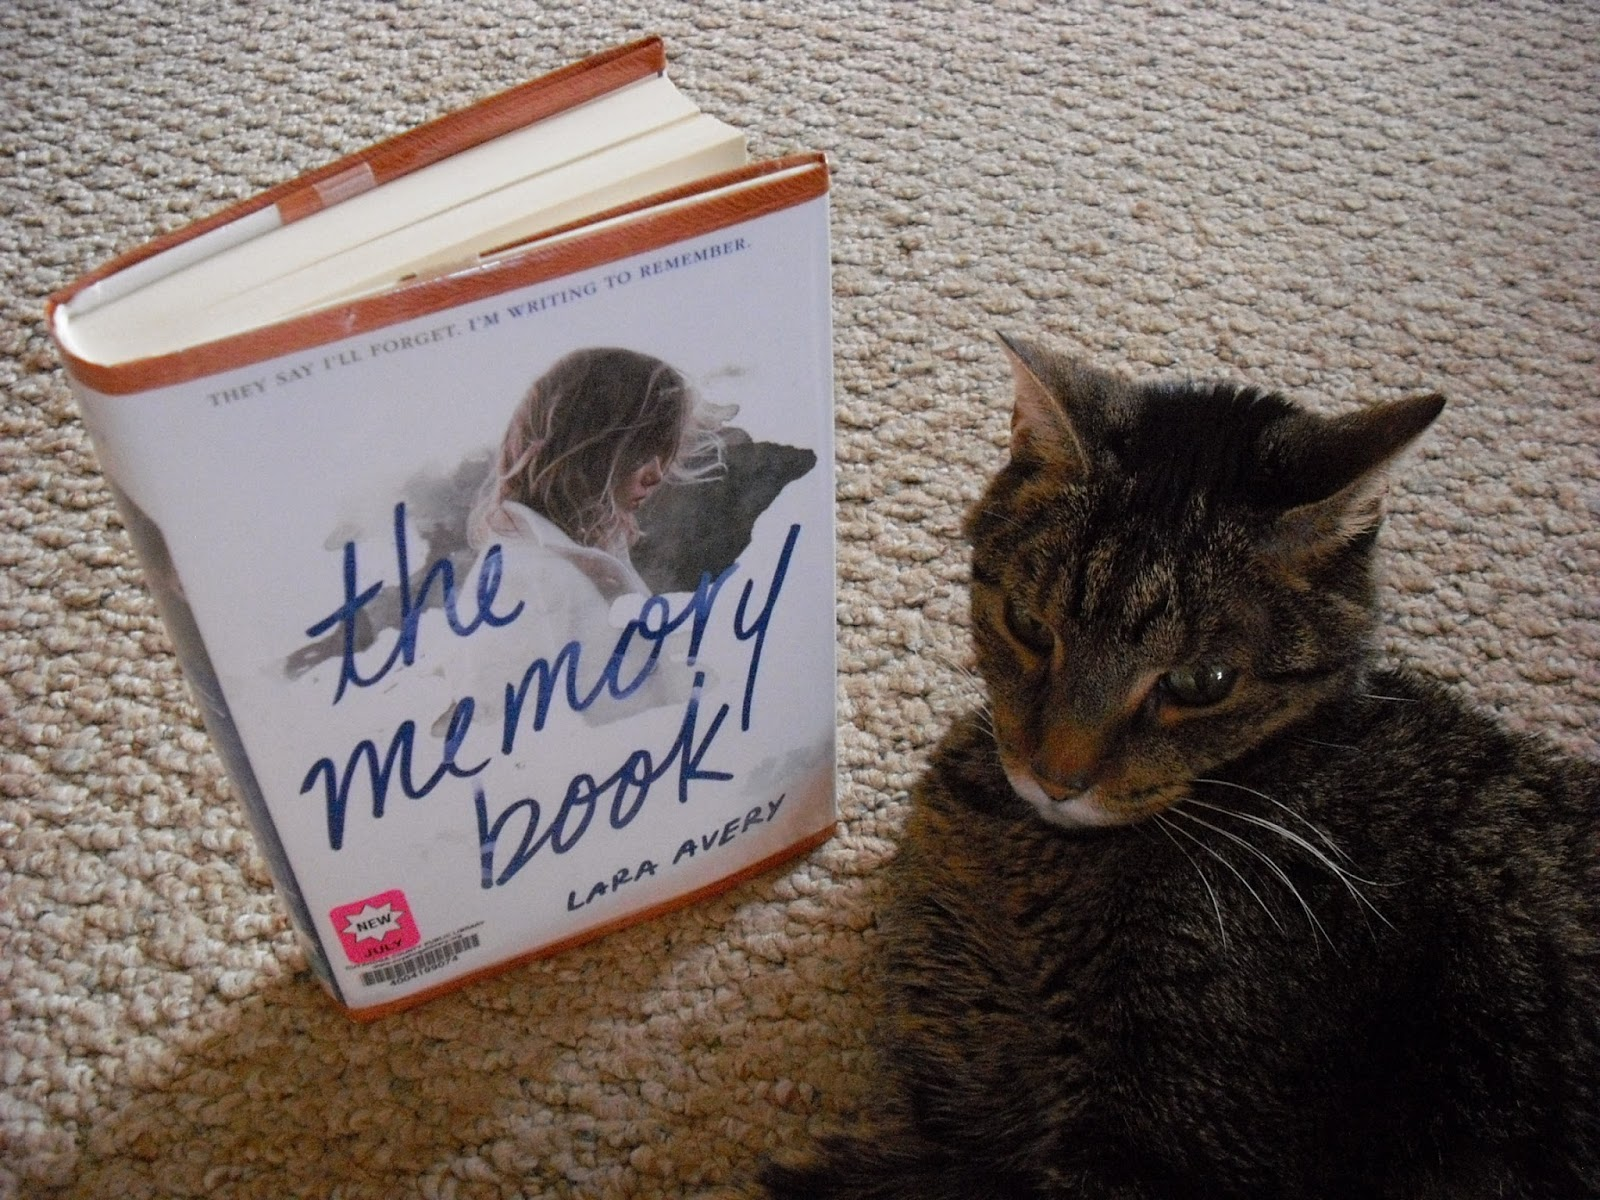 the memory book lara avery pdf